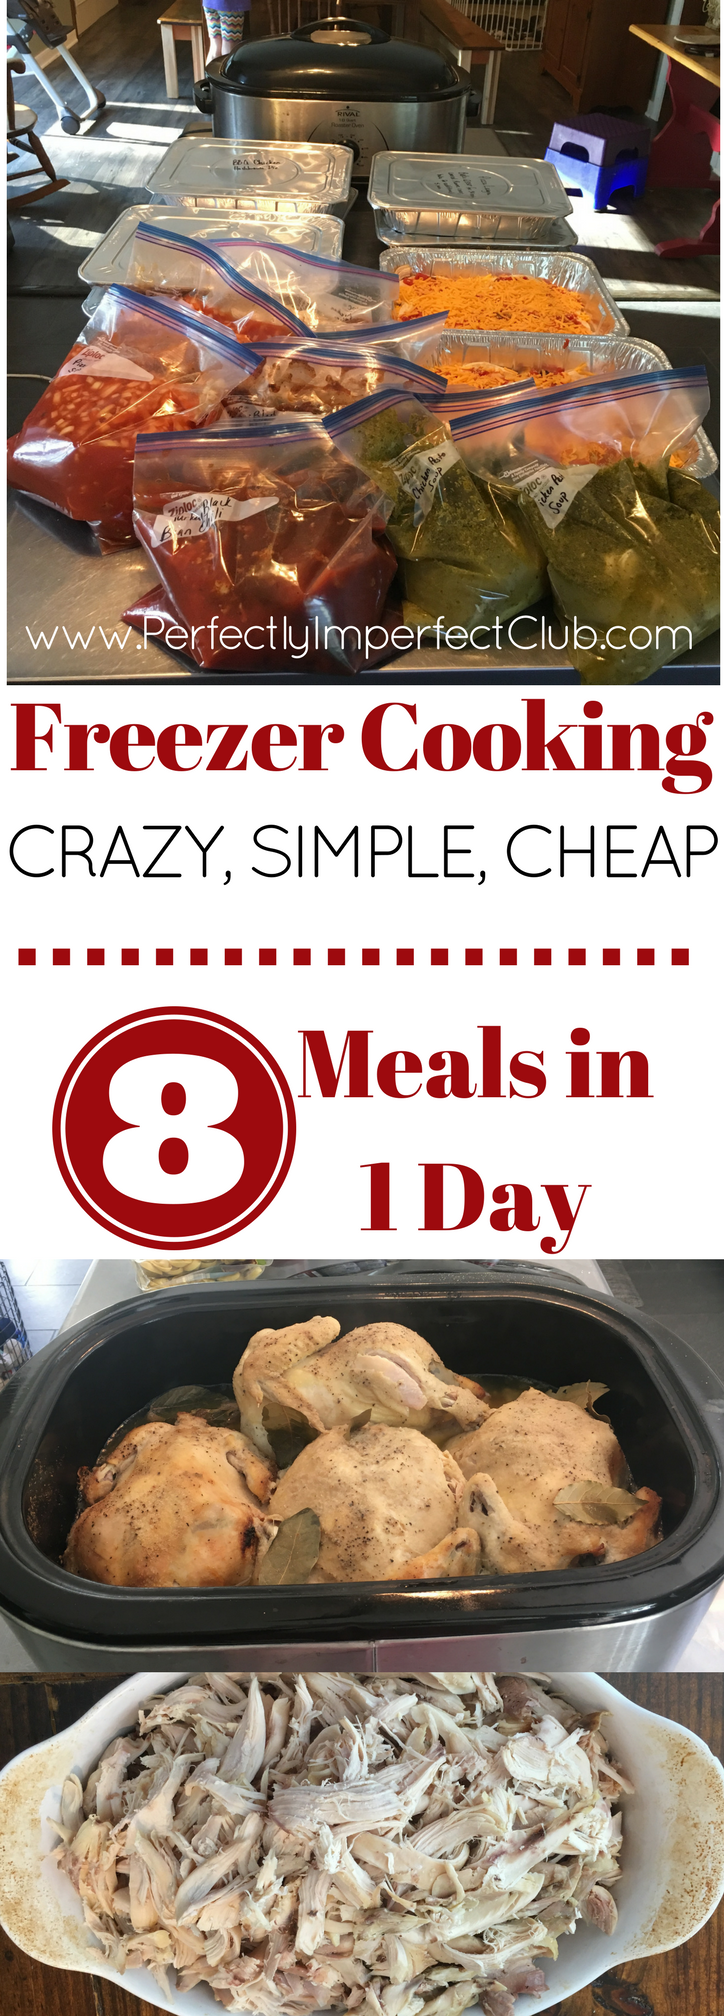 8 freezer cooking meals for just $50! Mom of 9 cooks 8 freezer meals in one day! |batch cooking|Aldi meals